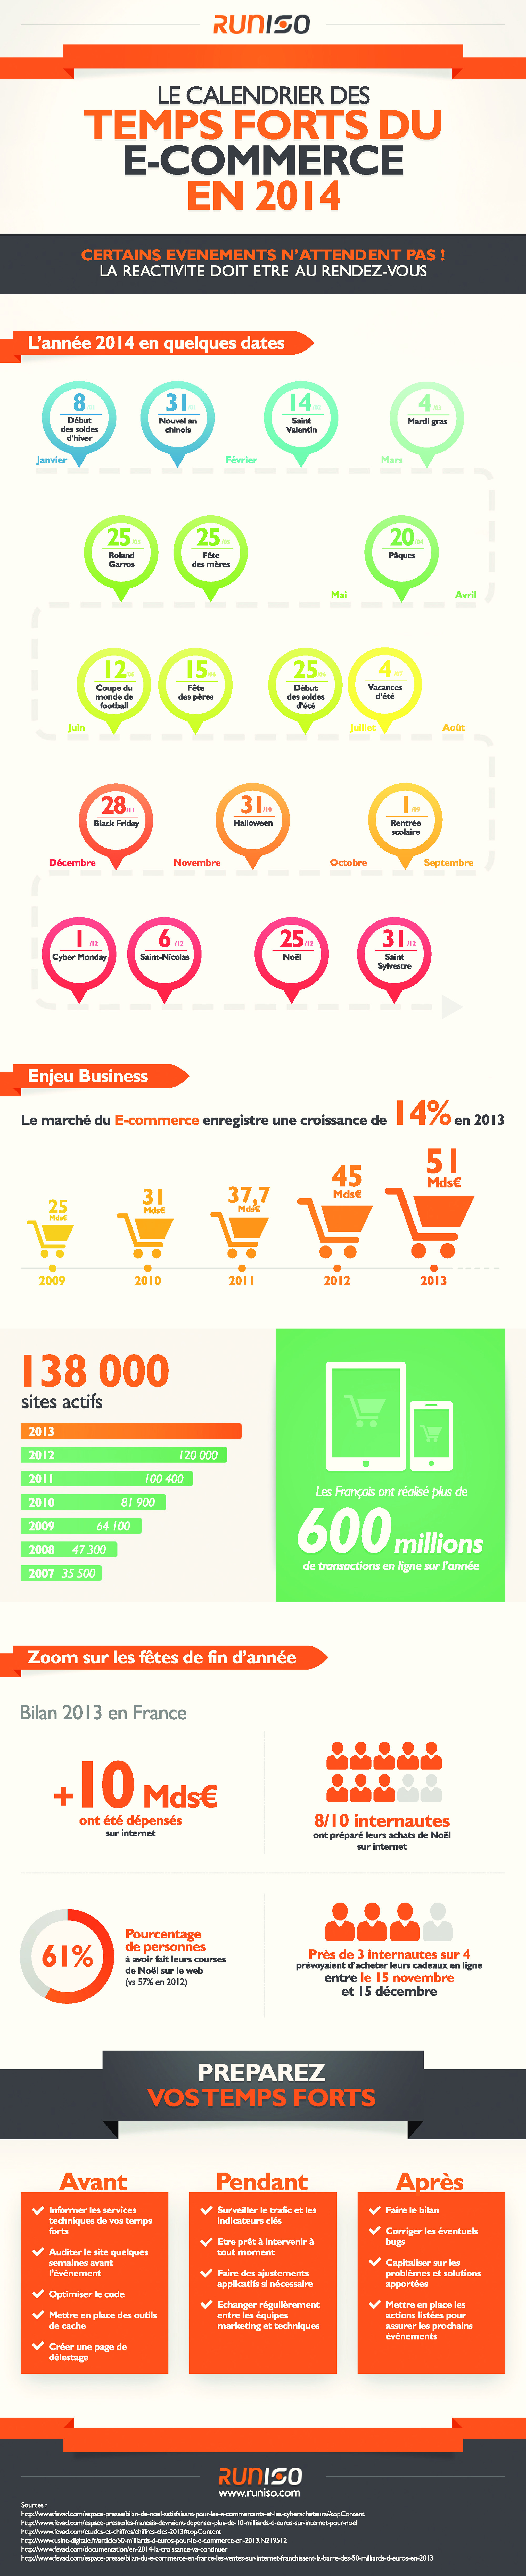 ecommerce-temps-forts-2014